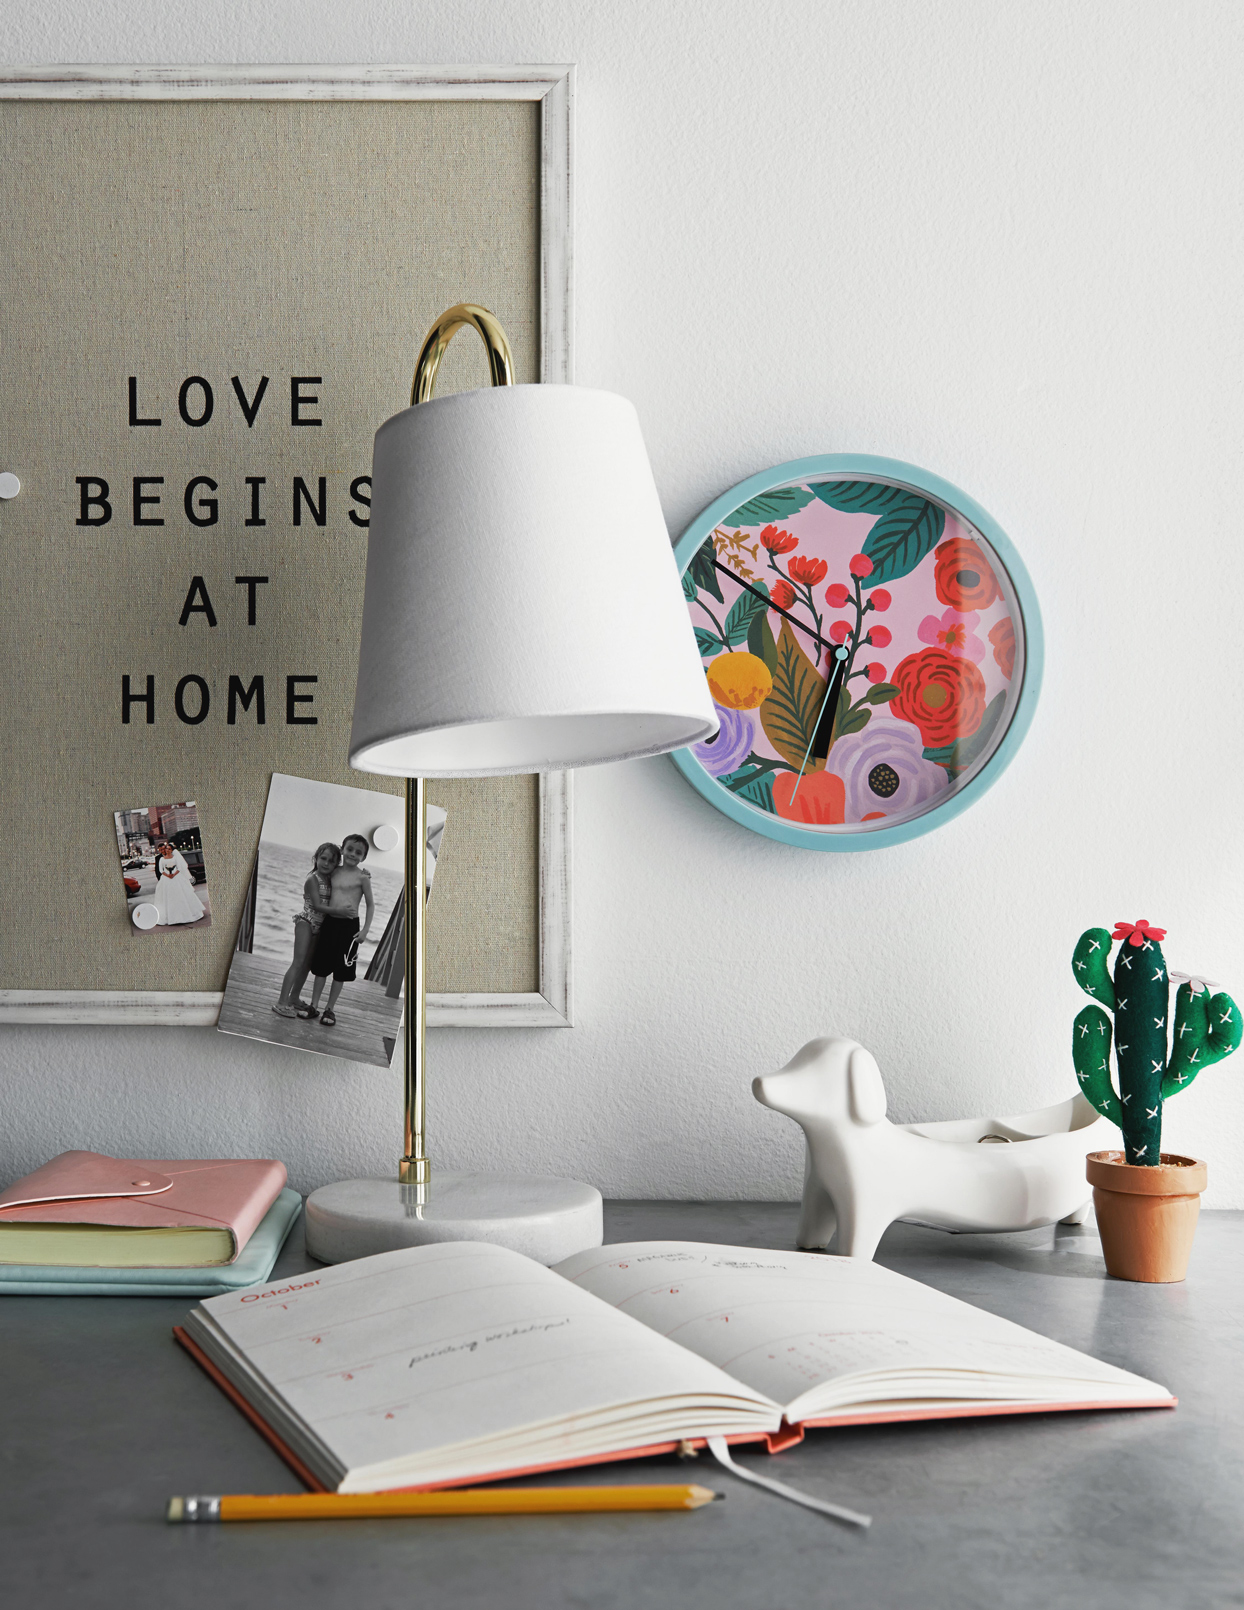 Diary by lamp on table against wall with decor at home